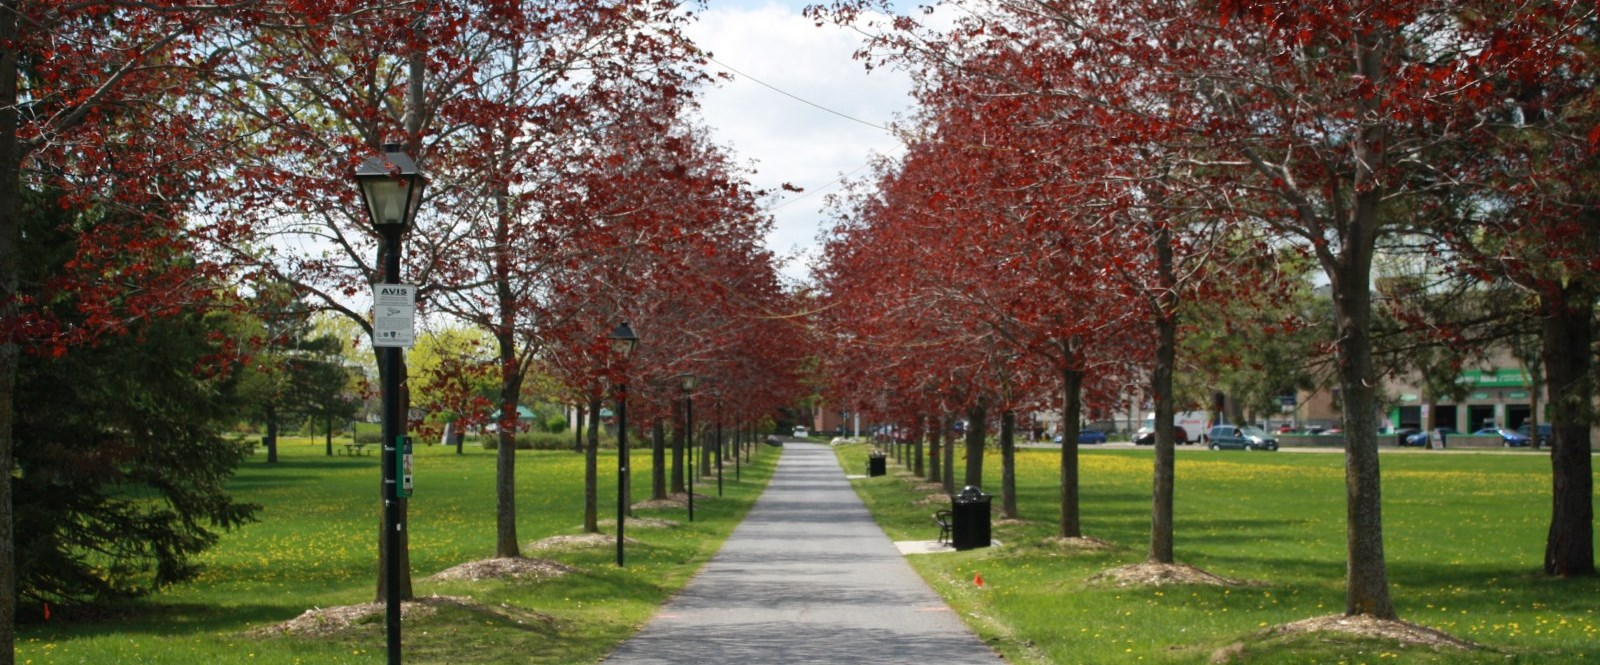 Two rows of red trees lining path in Cornwall Lamoureux Park